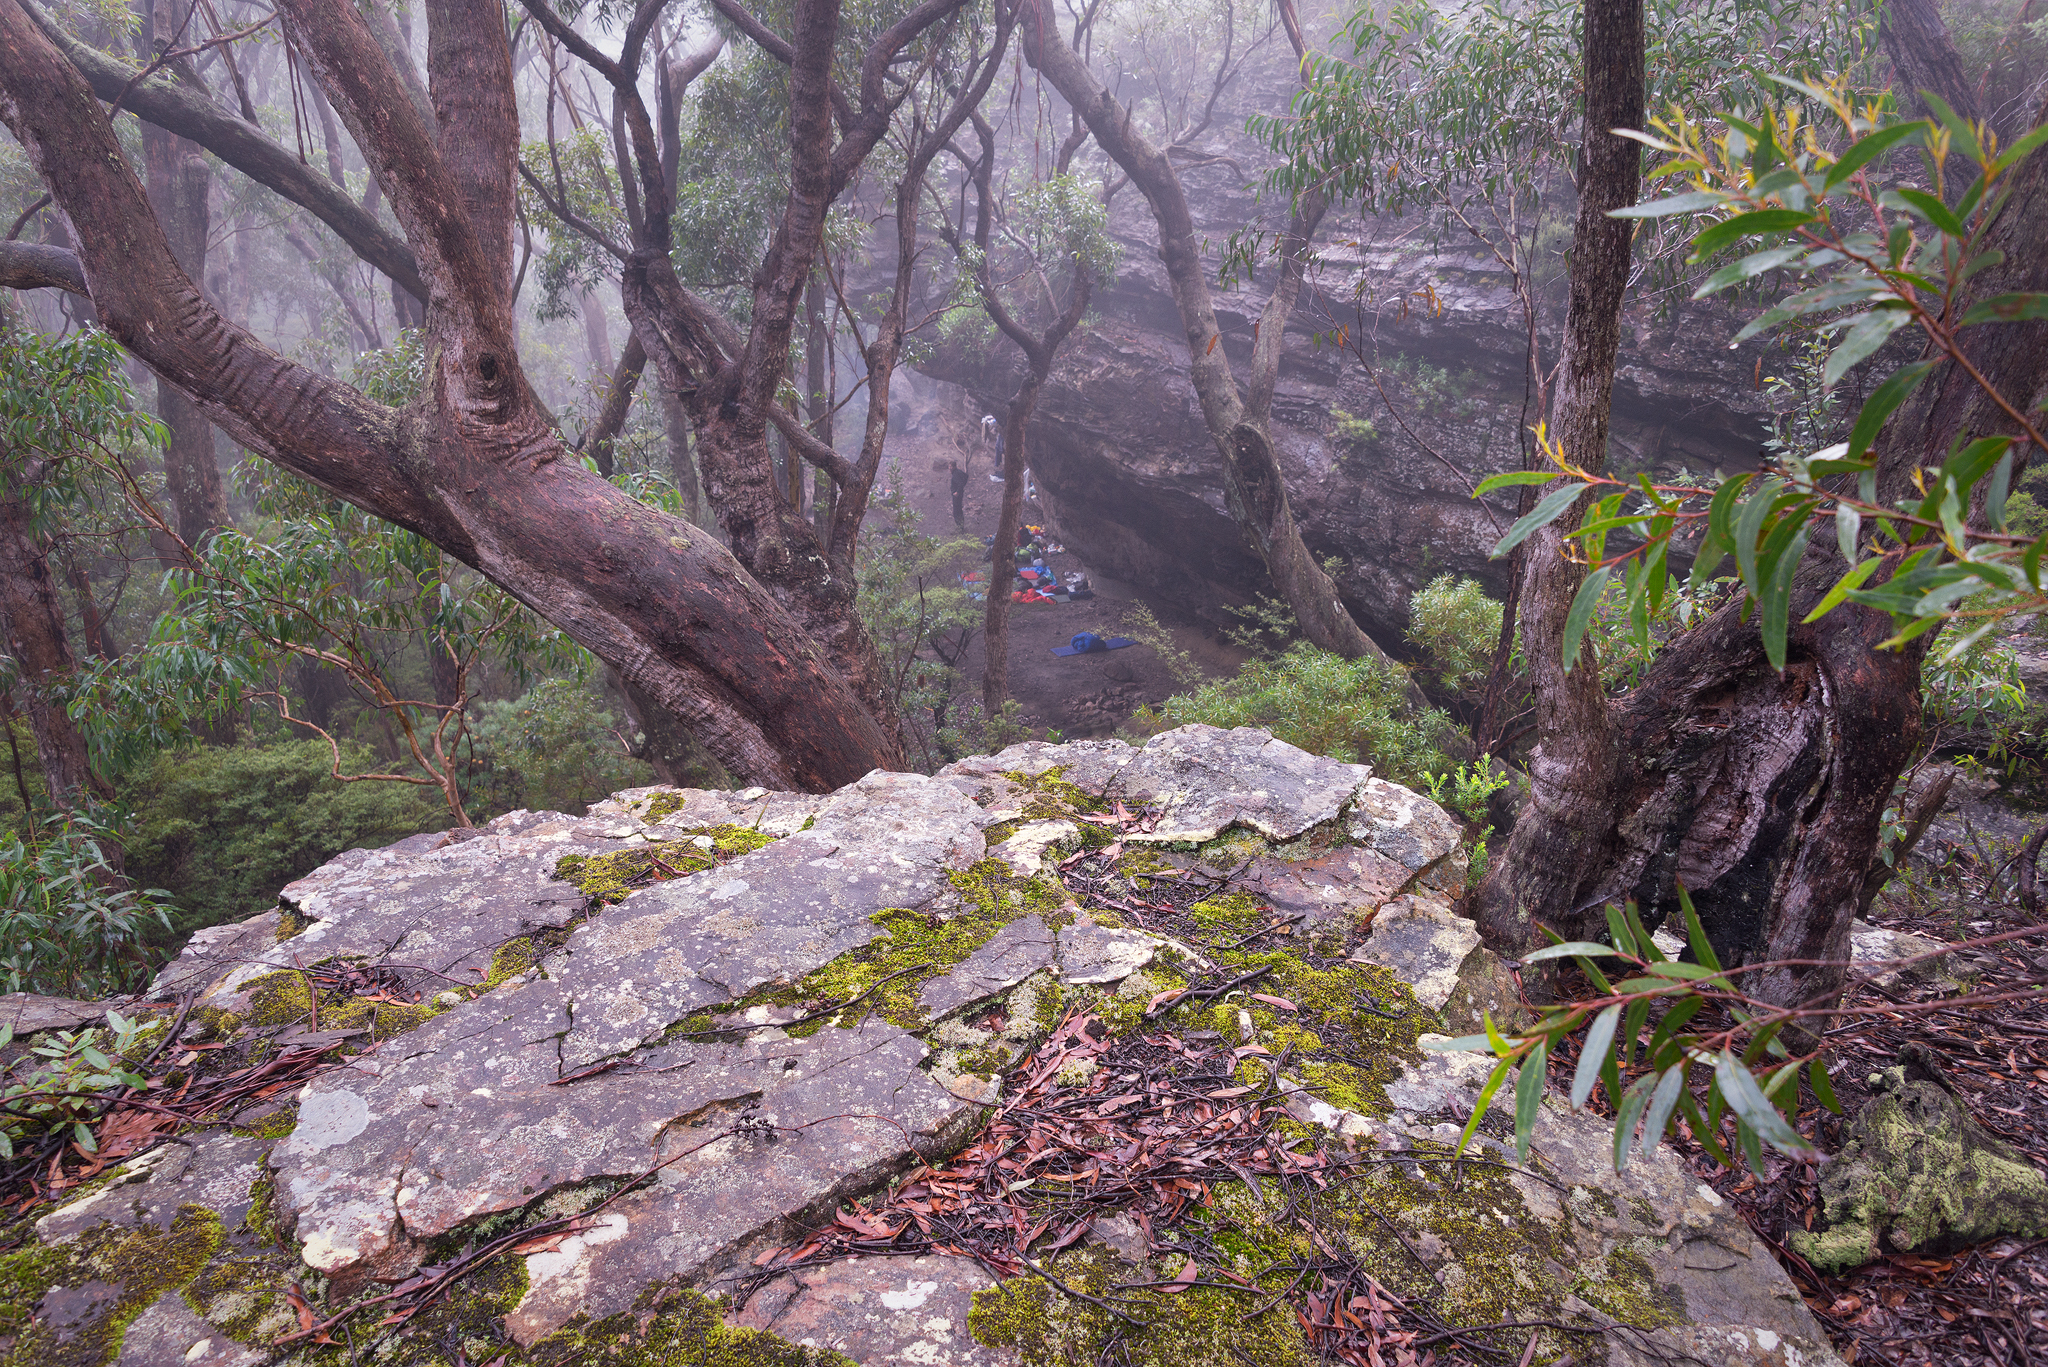 Chinaman's gap in the mist